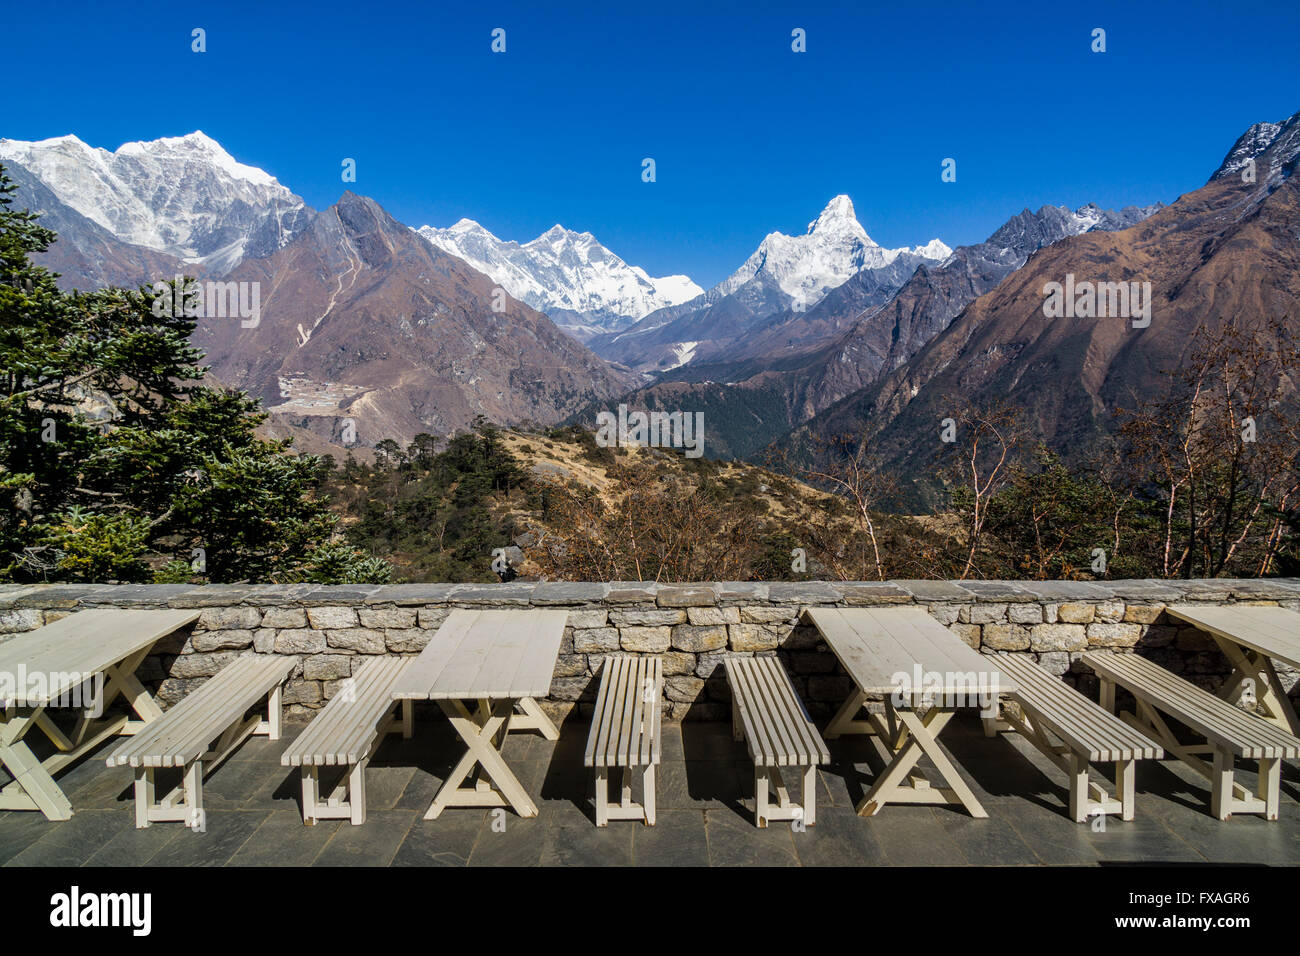 View of Mt. Everest from the Everest View Hotel, located high above Namche Bazar at an altitude of 3900m, Namche - Stock Image